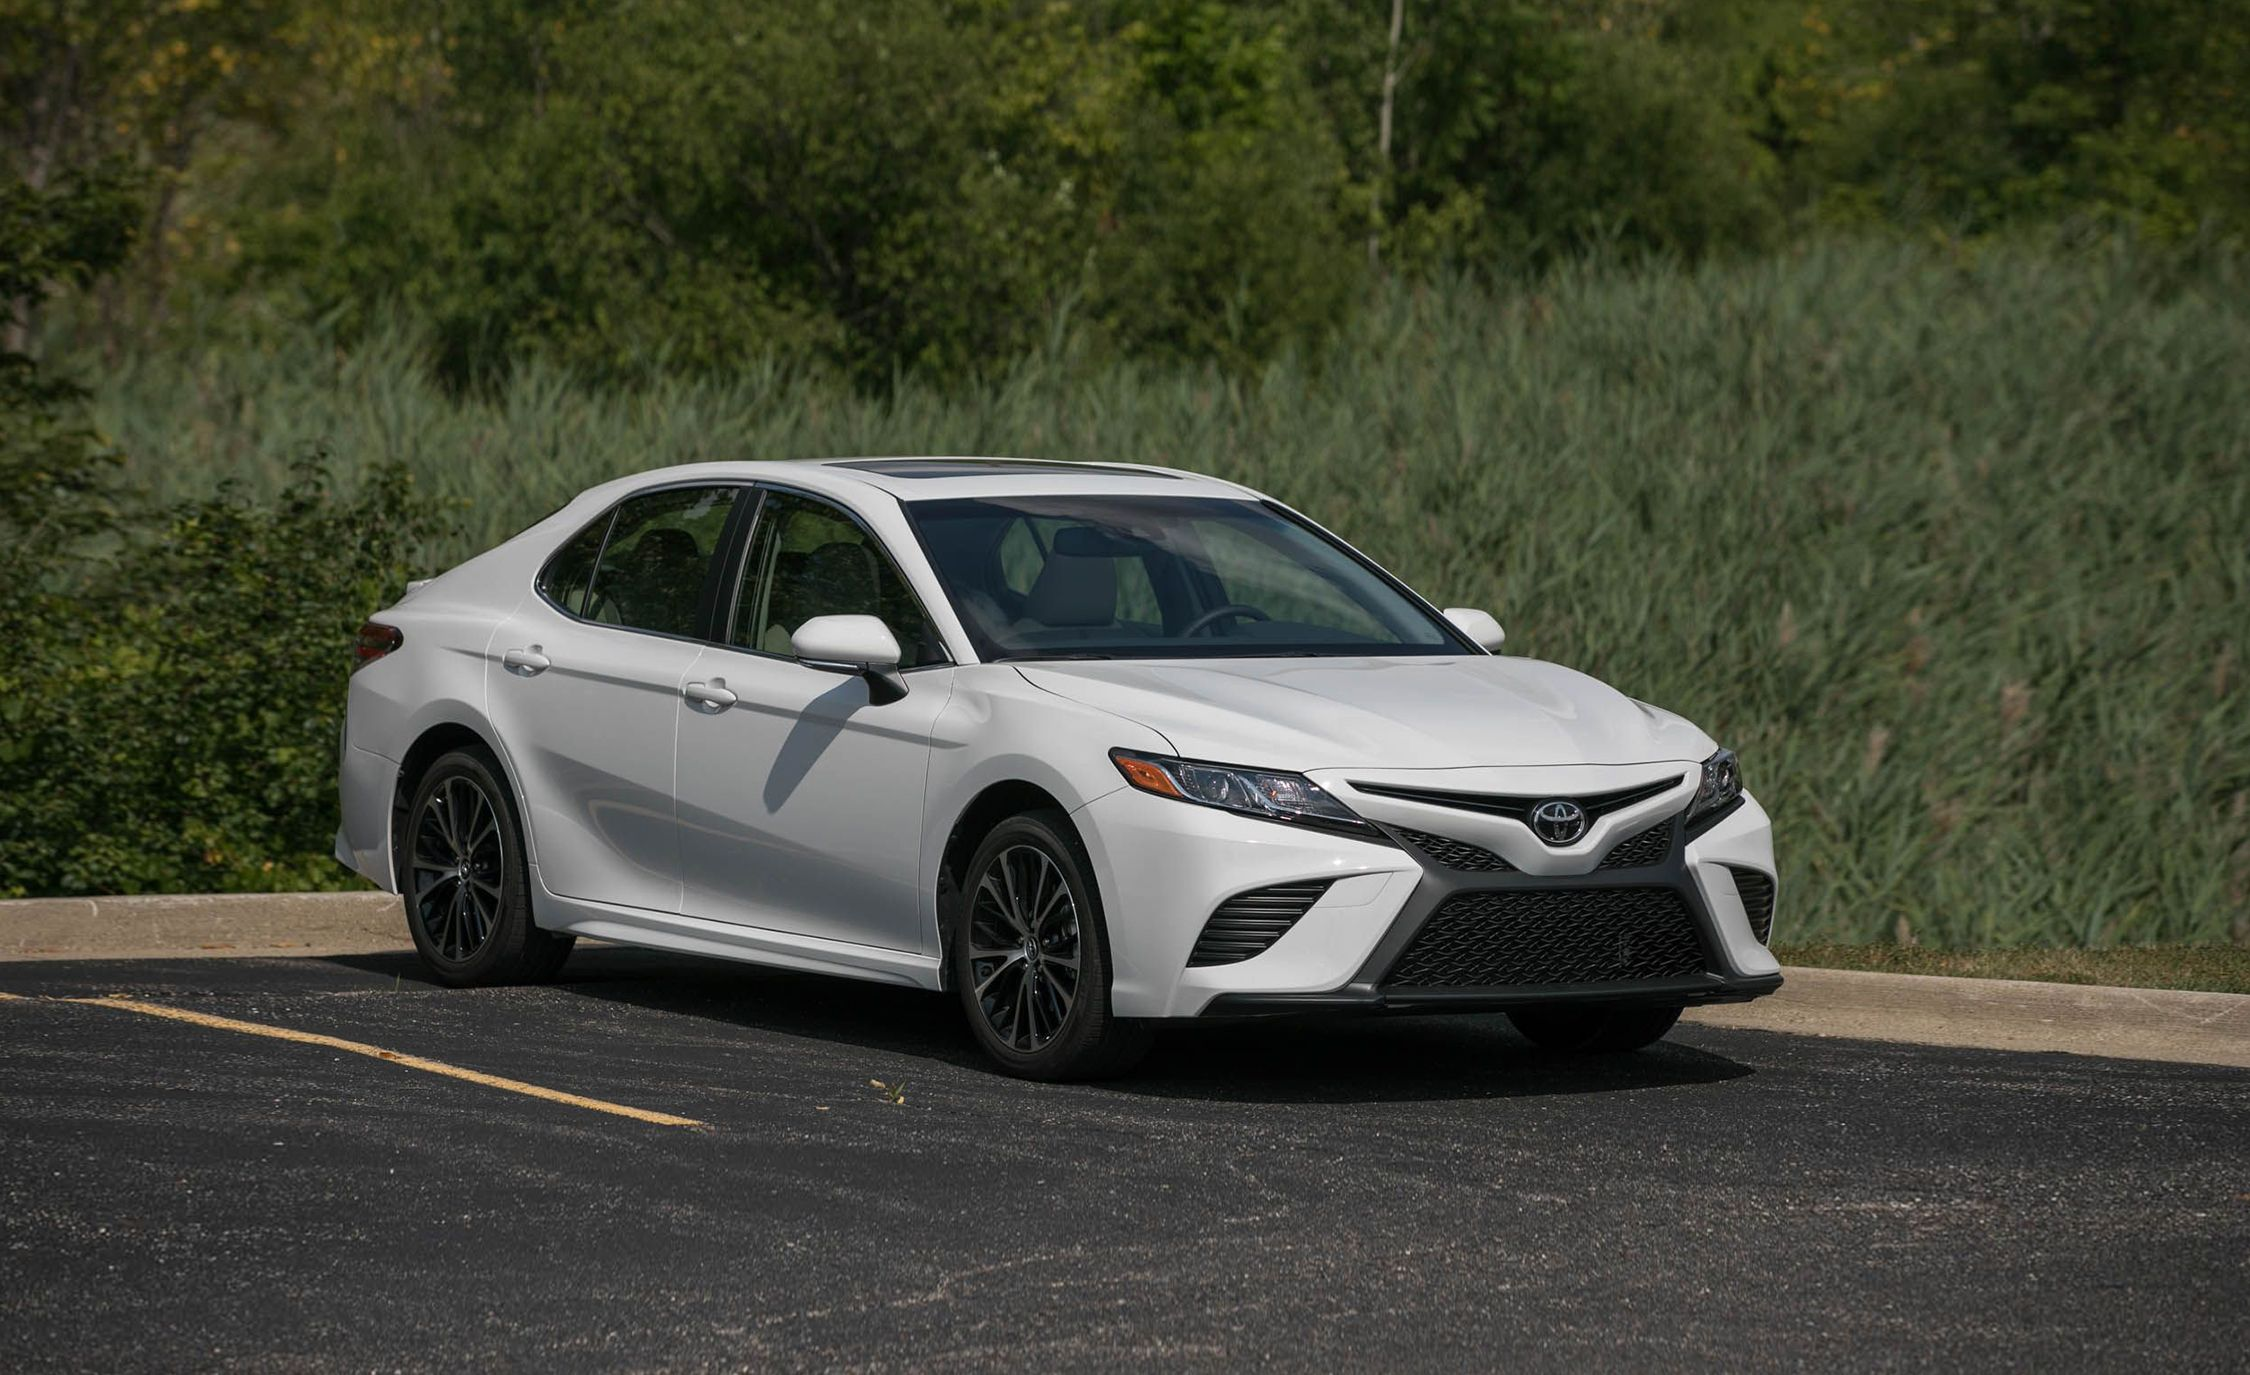 2020 toyota camry review, pricing, and specs camry exhaust diagram camry hybrid engine diagram #15